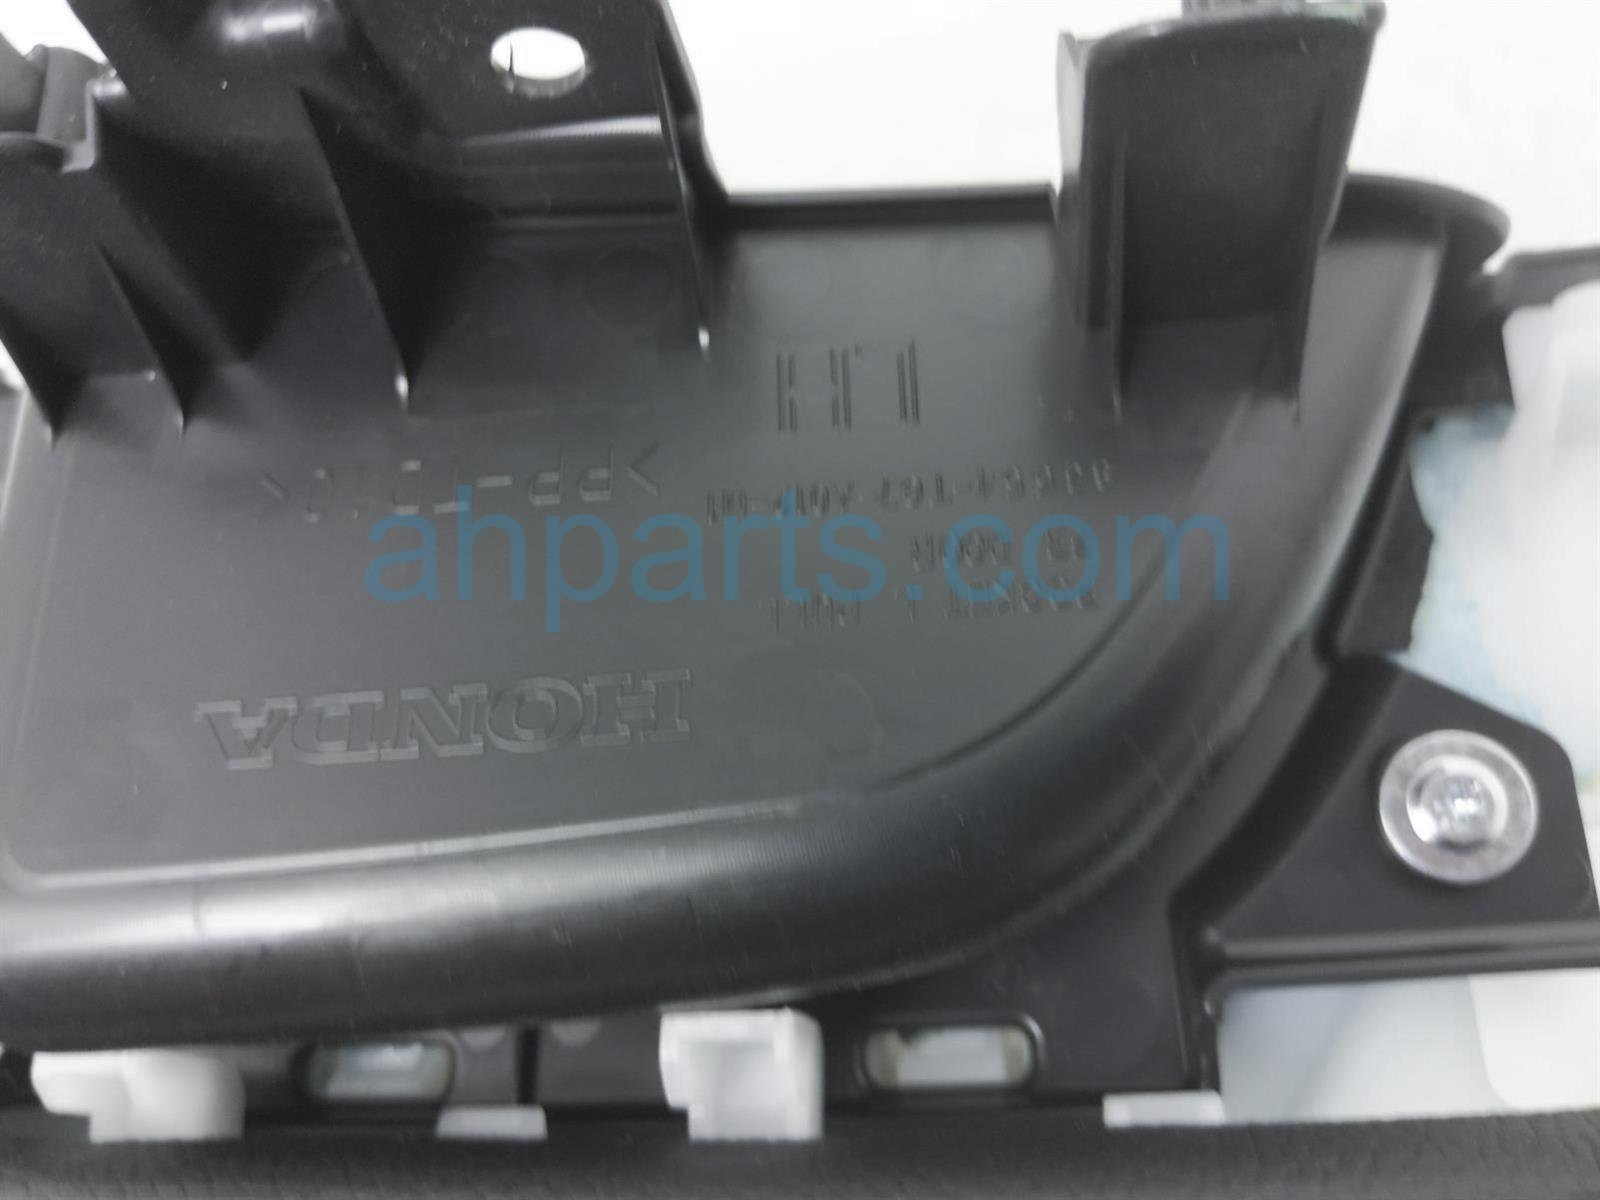 2019 Honda Pilot Power / Master Window Control Switch 35750 TG7 A11 Replacement